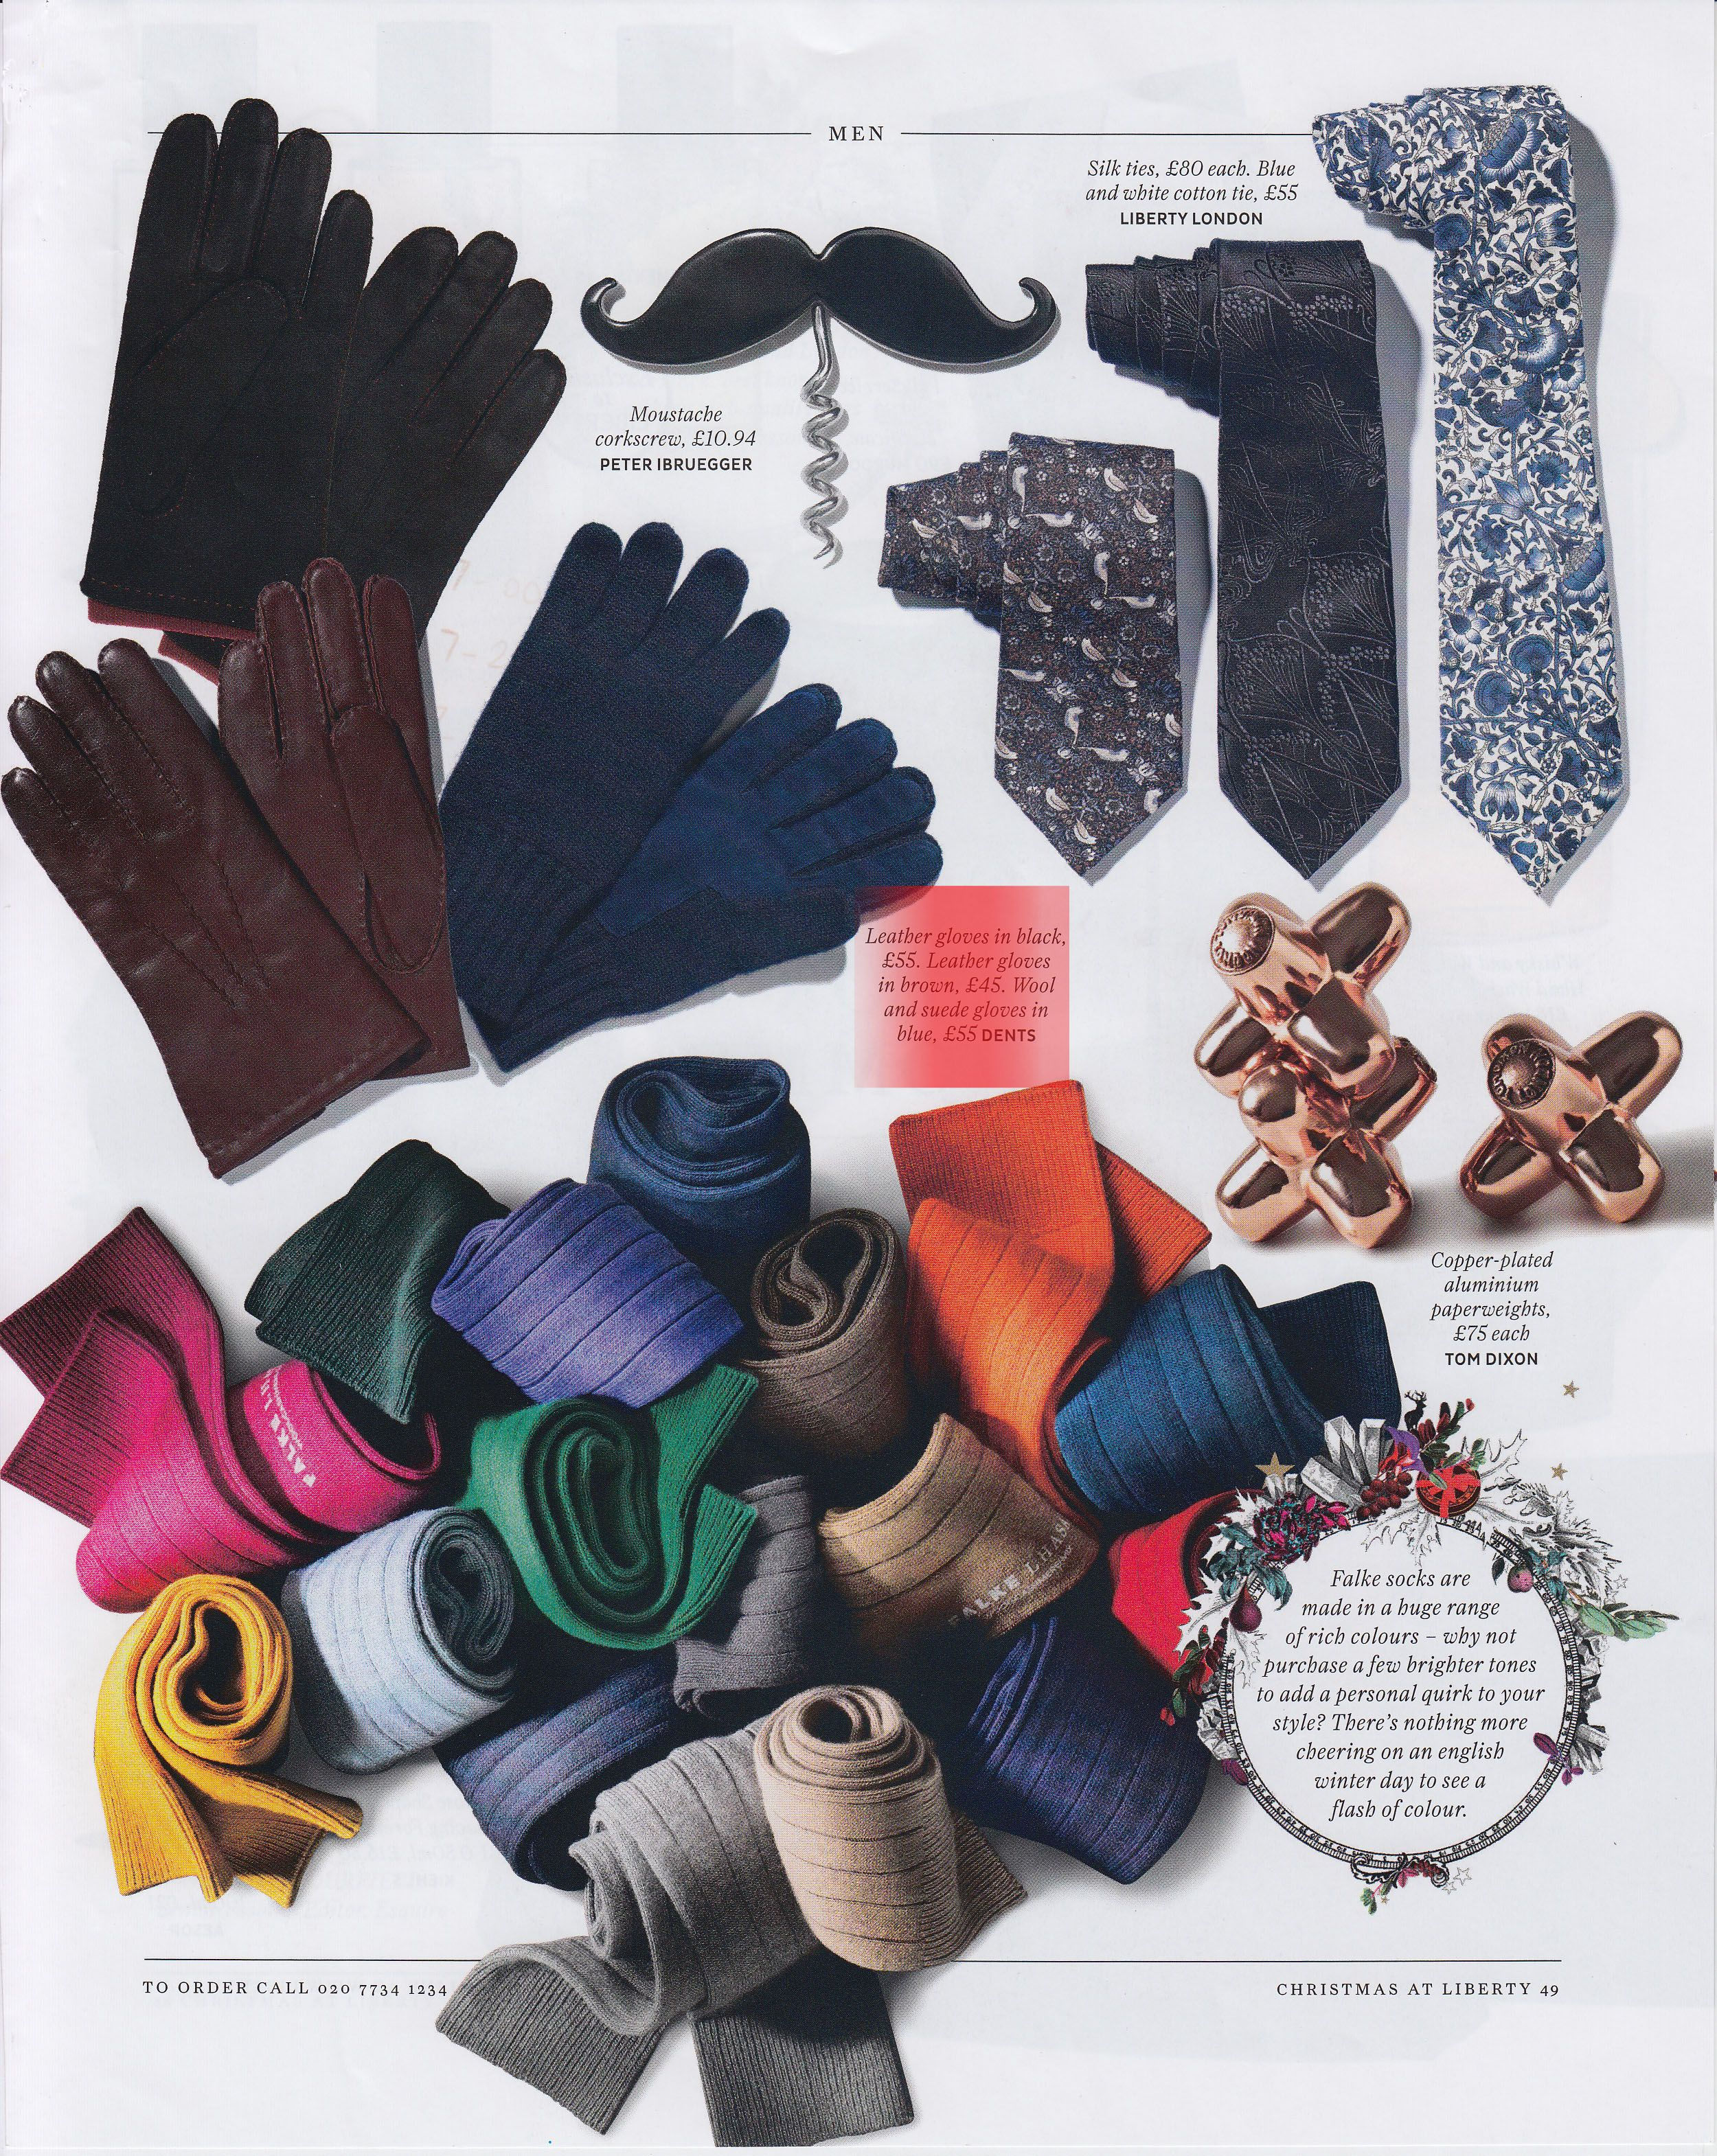 Gifts for the sartorial man...as seen in @Liberty London Magazine December 2012